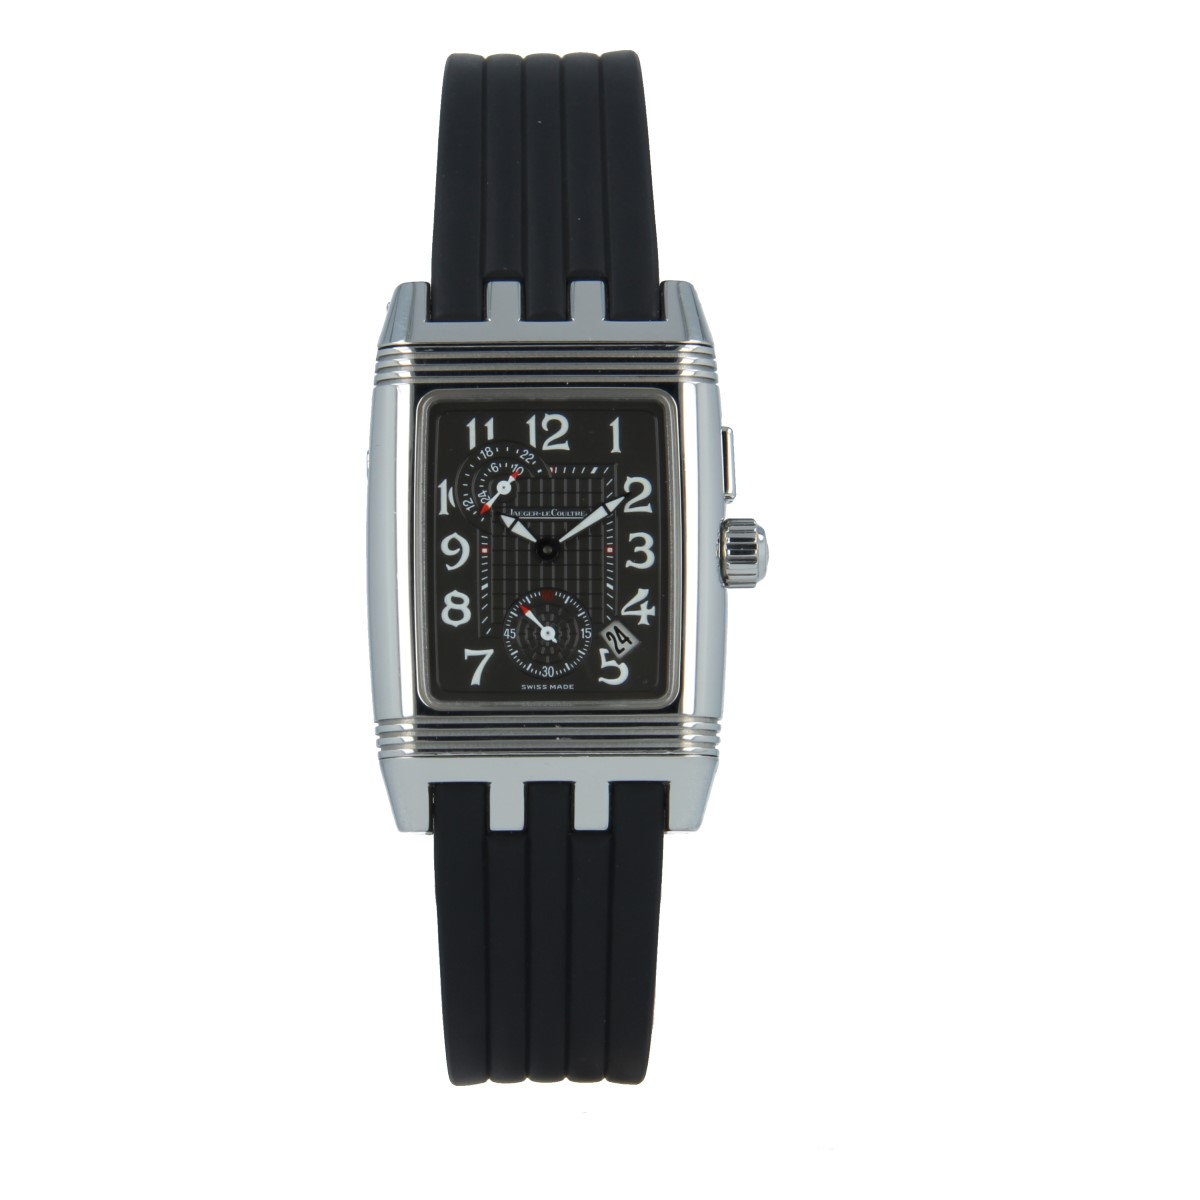 Jaeger-LeCoultre Reverso Gran'Sport Duoface | Buy pre-owned Jaeger-LeCoultre watch